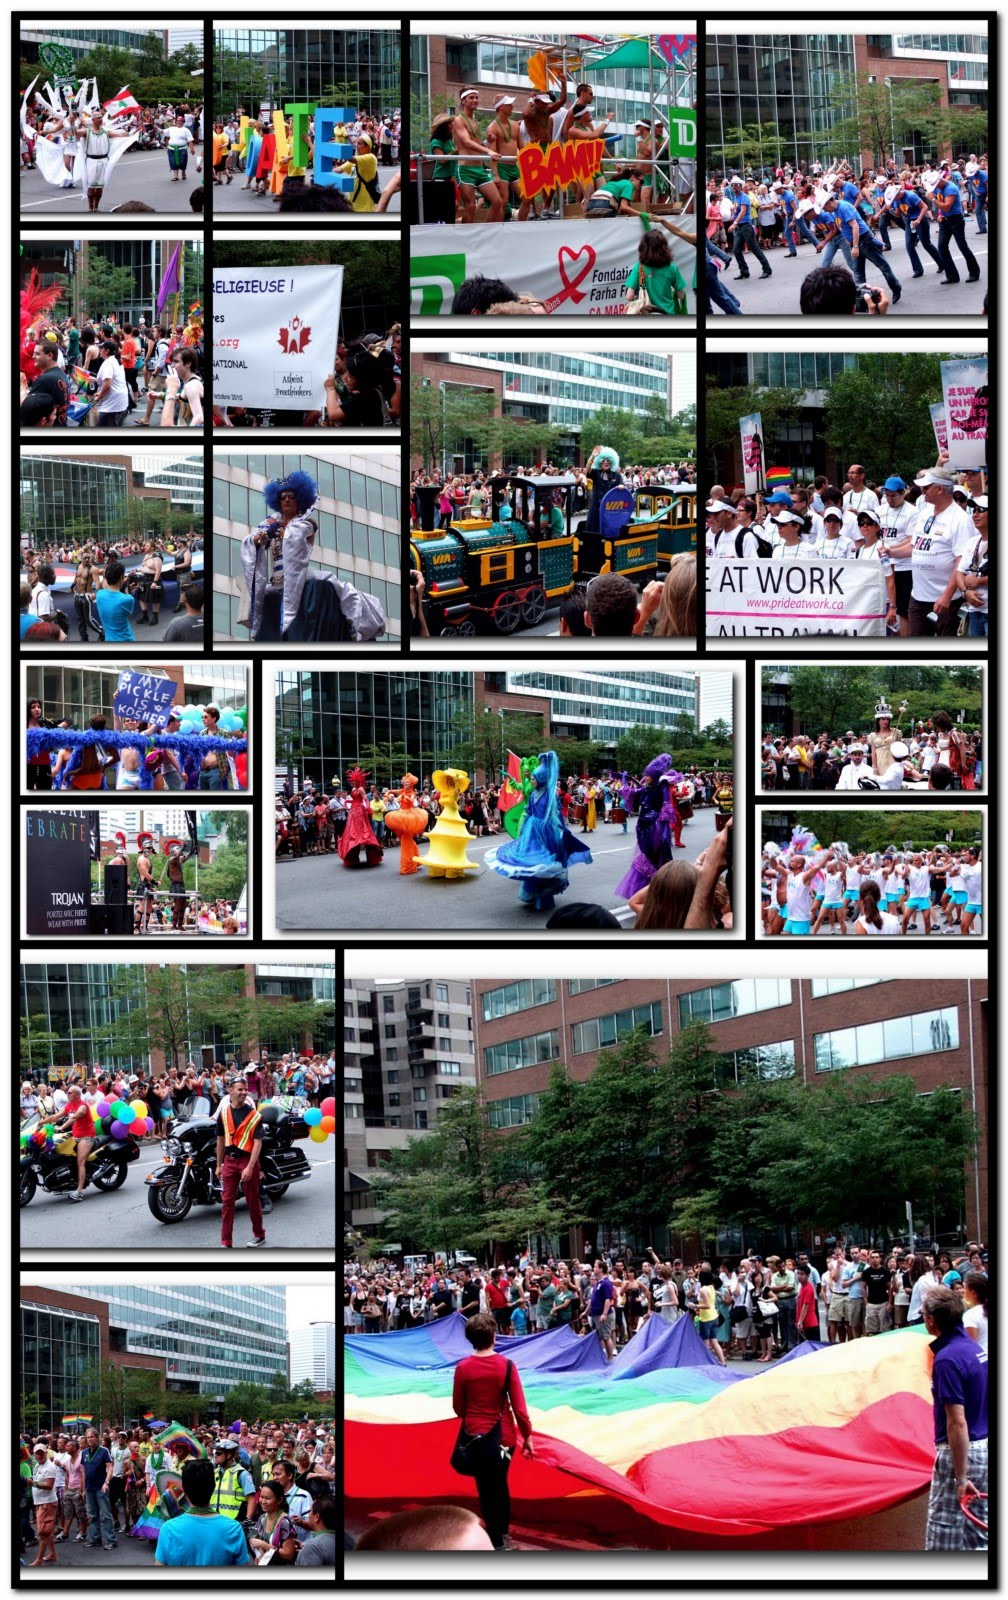 from Shane montreal gay pride 2010